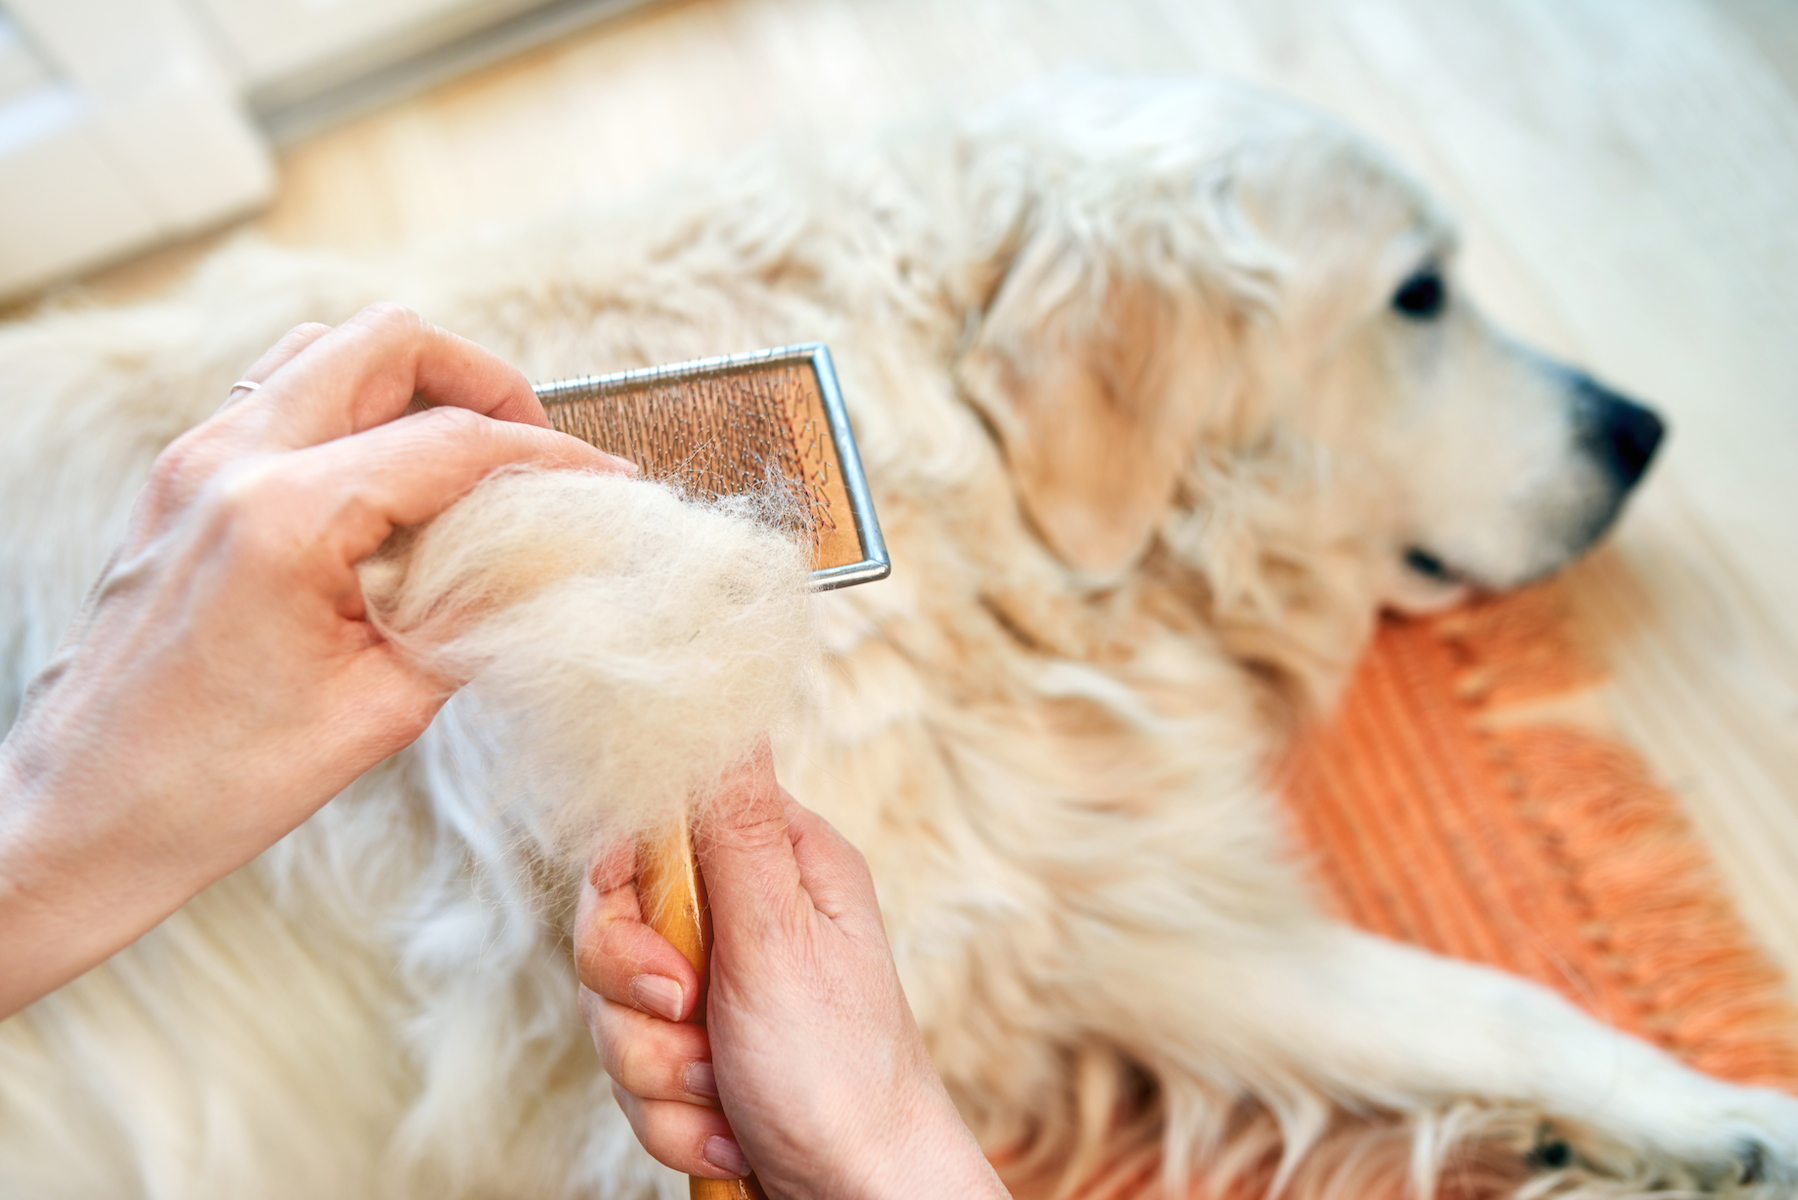 Canva - Woman combs old Golden Retriever dog with a metal grooming comb